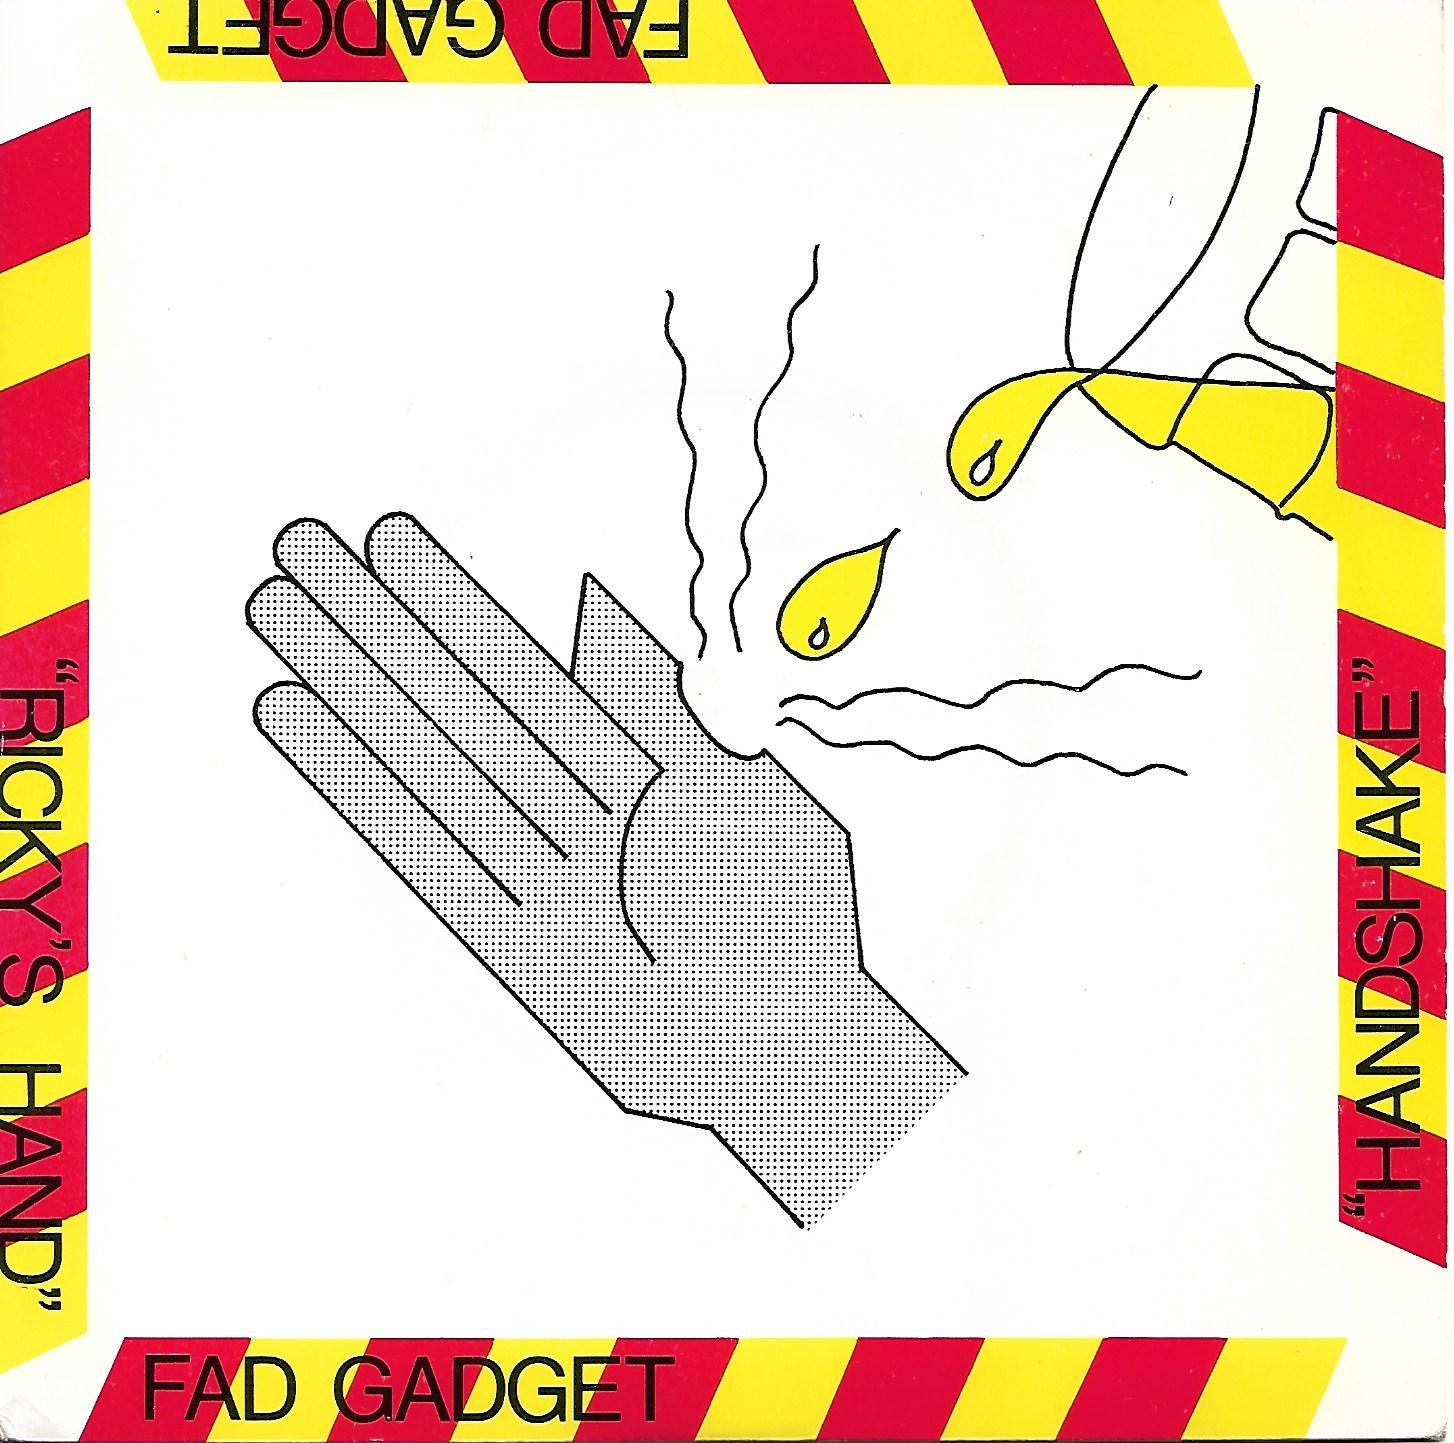 NEWS On this day, 41 years ago, Fad Gadget released his second single 'Ricky's Hand'!